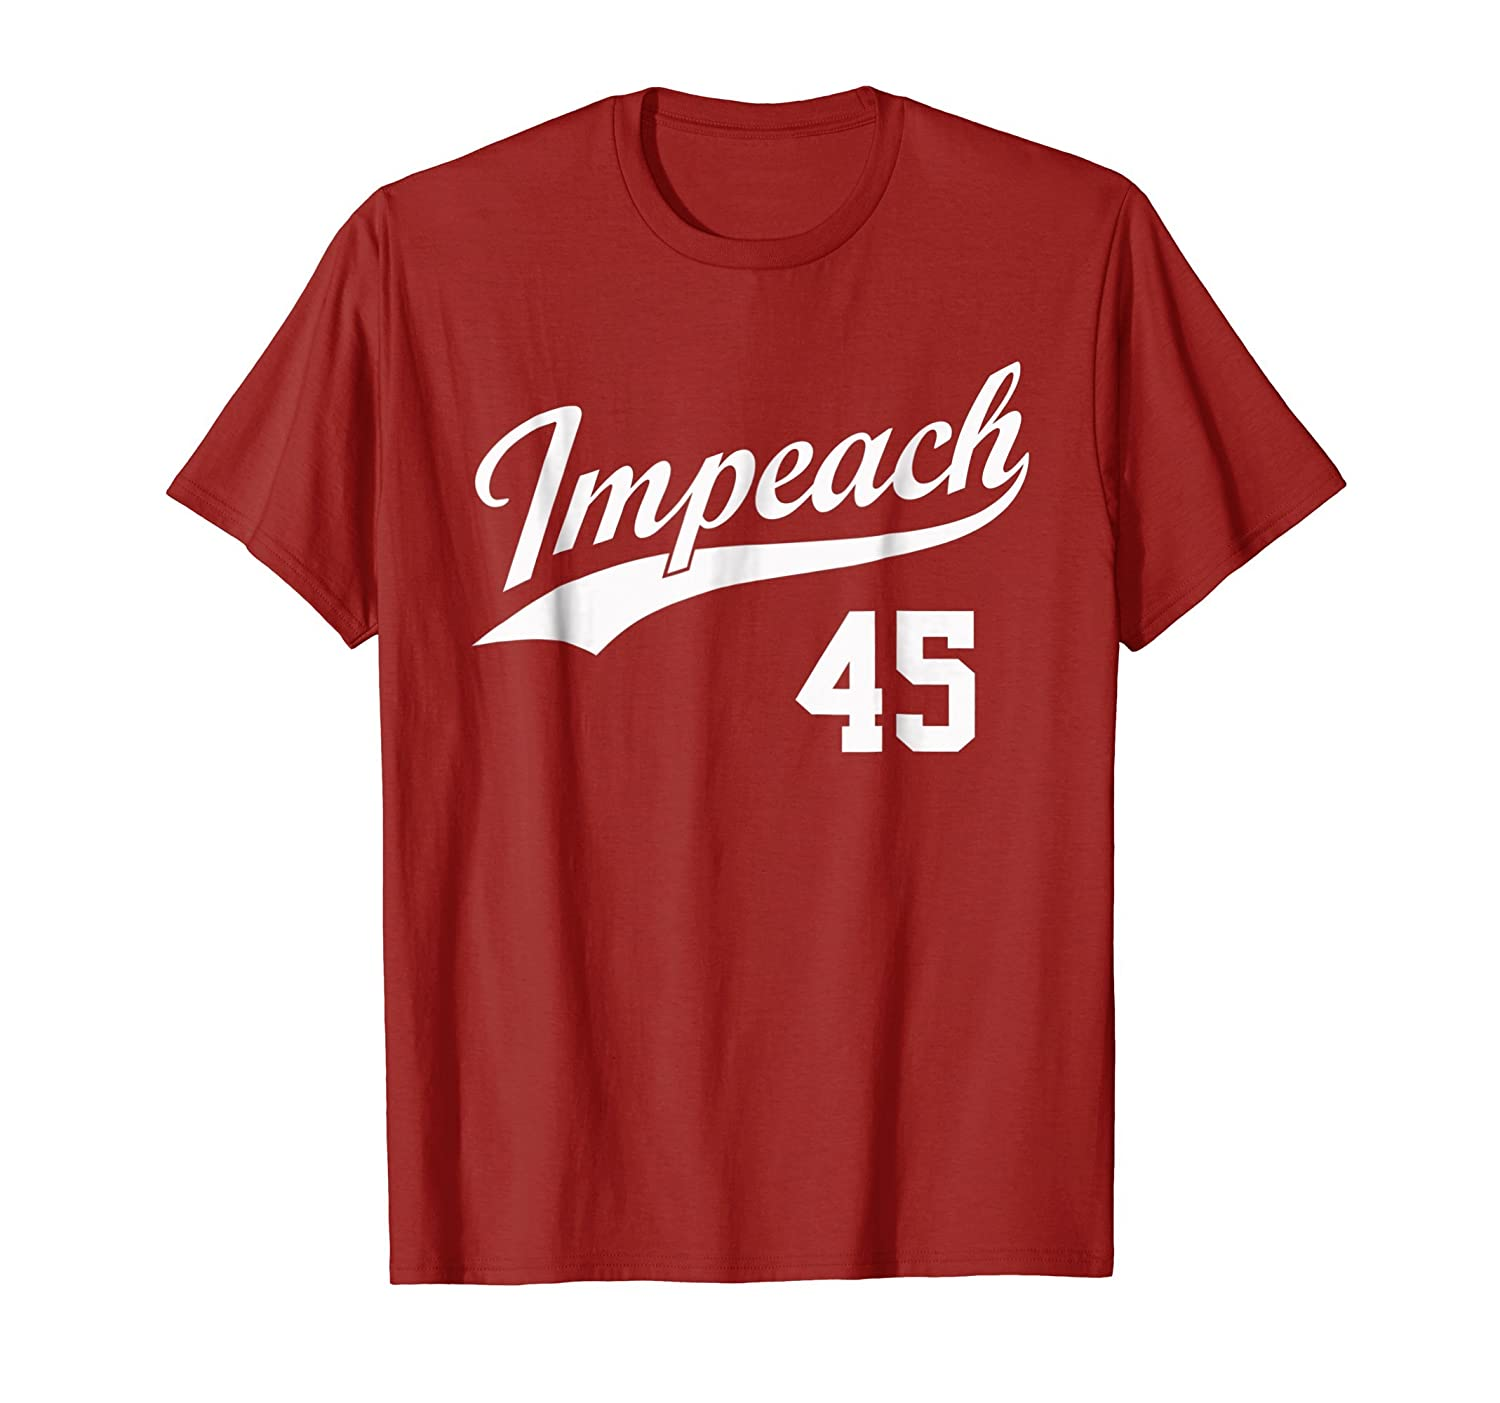 Team Impeach 45 - Impeach Trump T-Shirt-mt